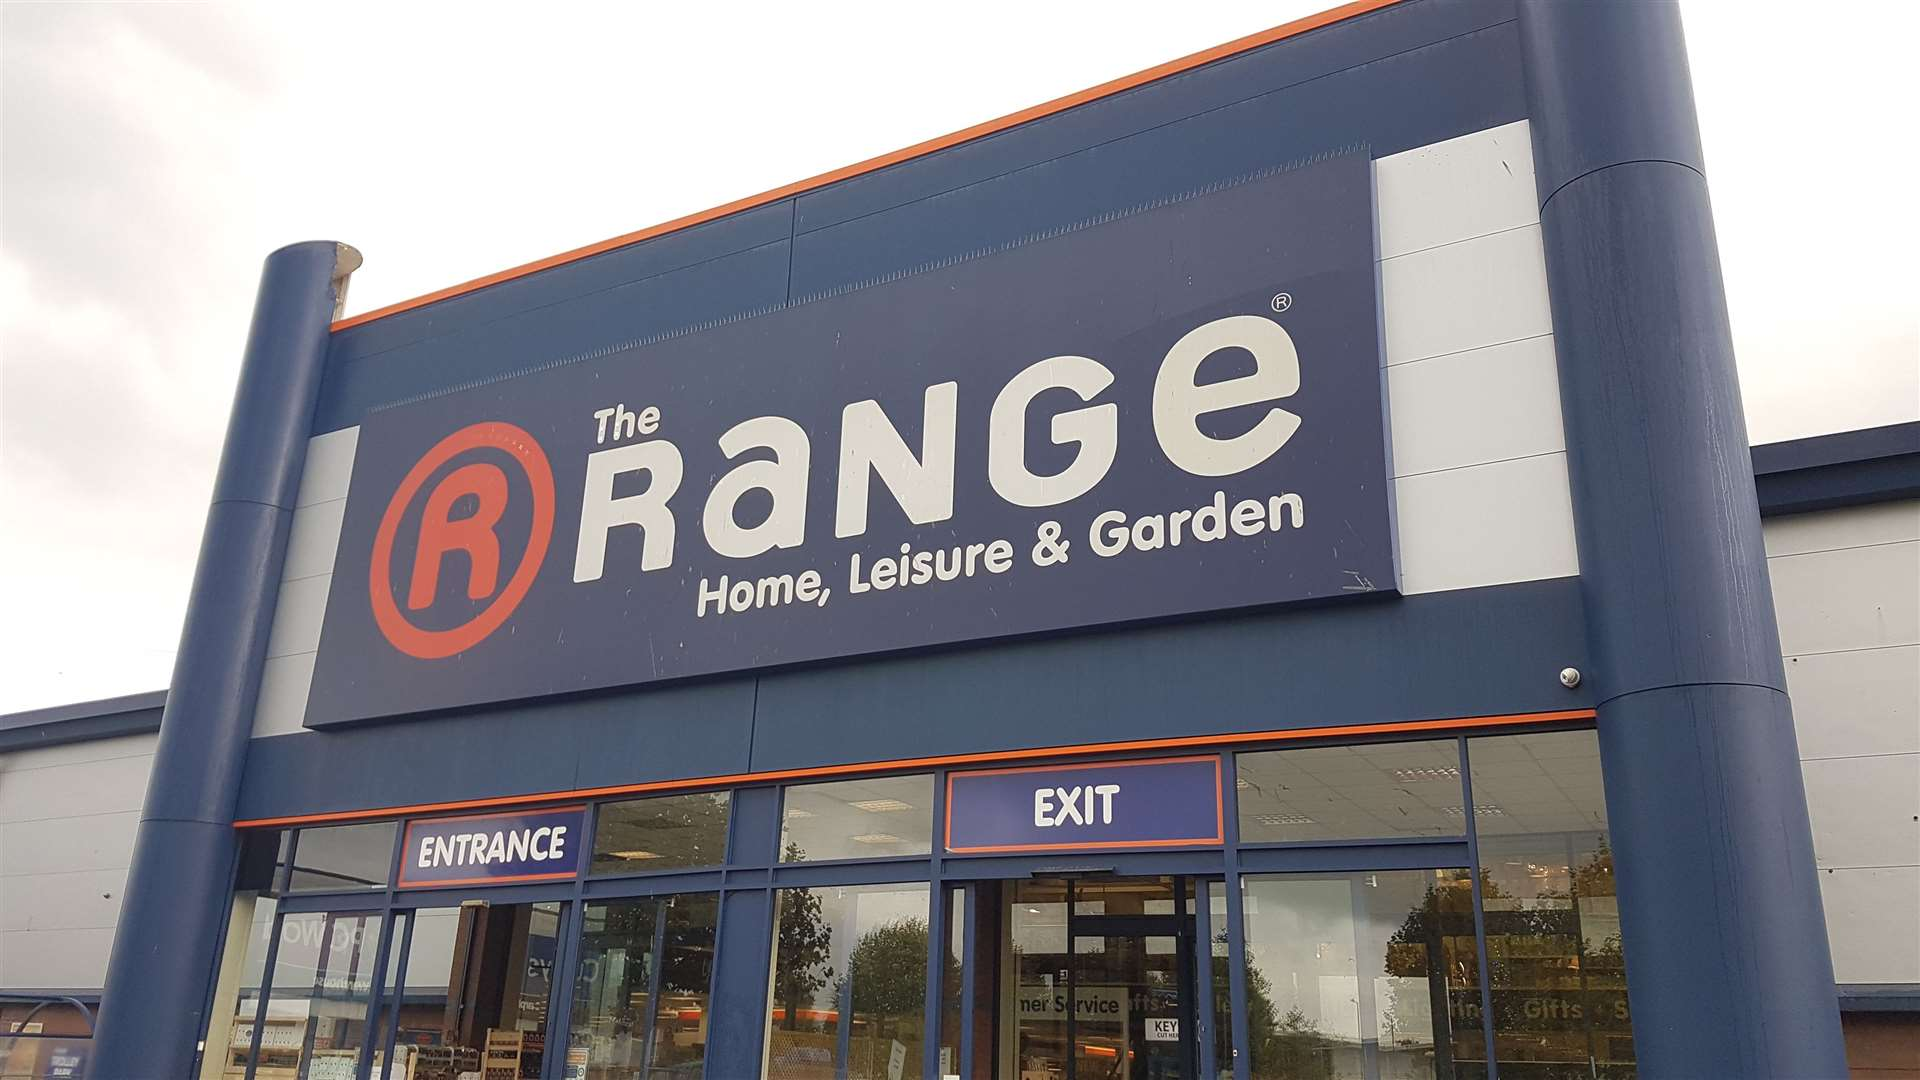 The Range in Canterbury is set to house an Iceland branch and cafe